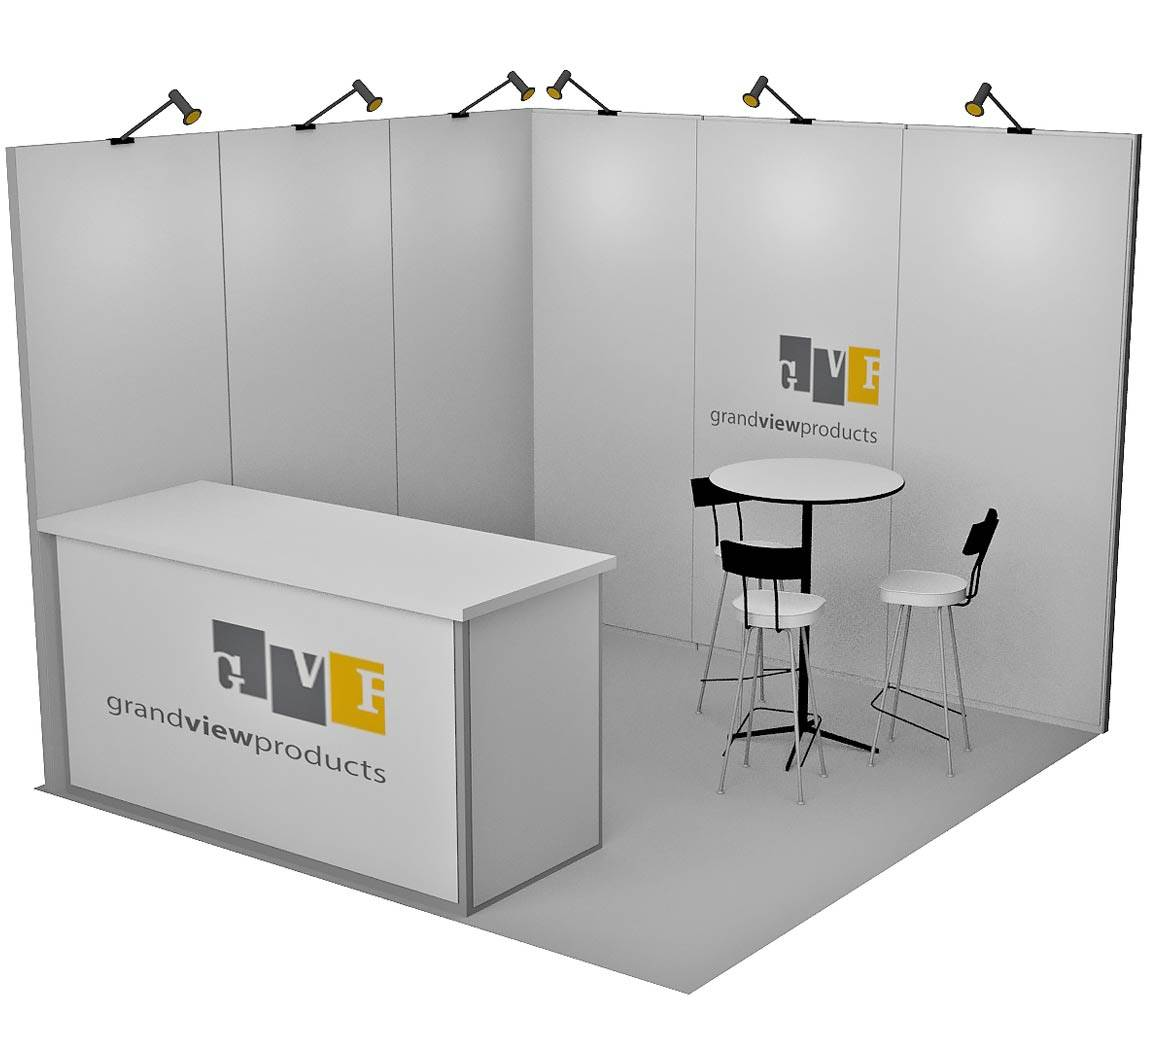 Grand View Products - 10x10 Trade Show Booth - Booth Design ...